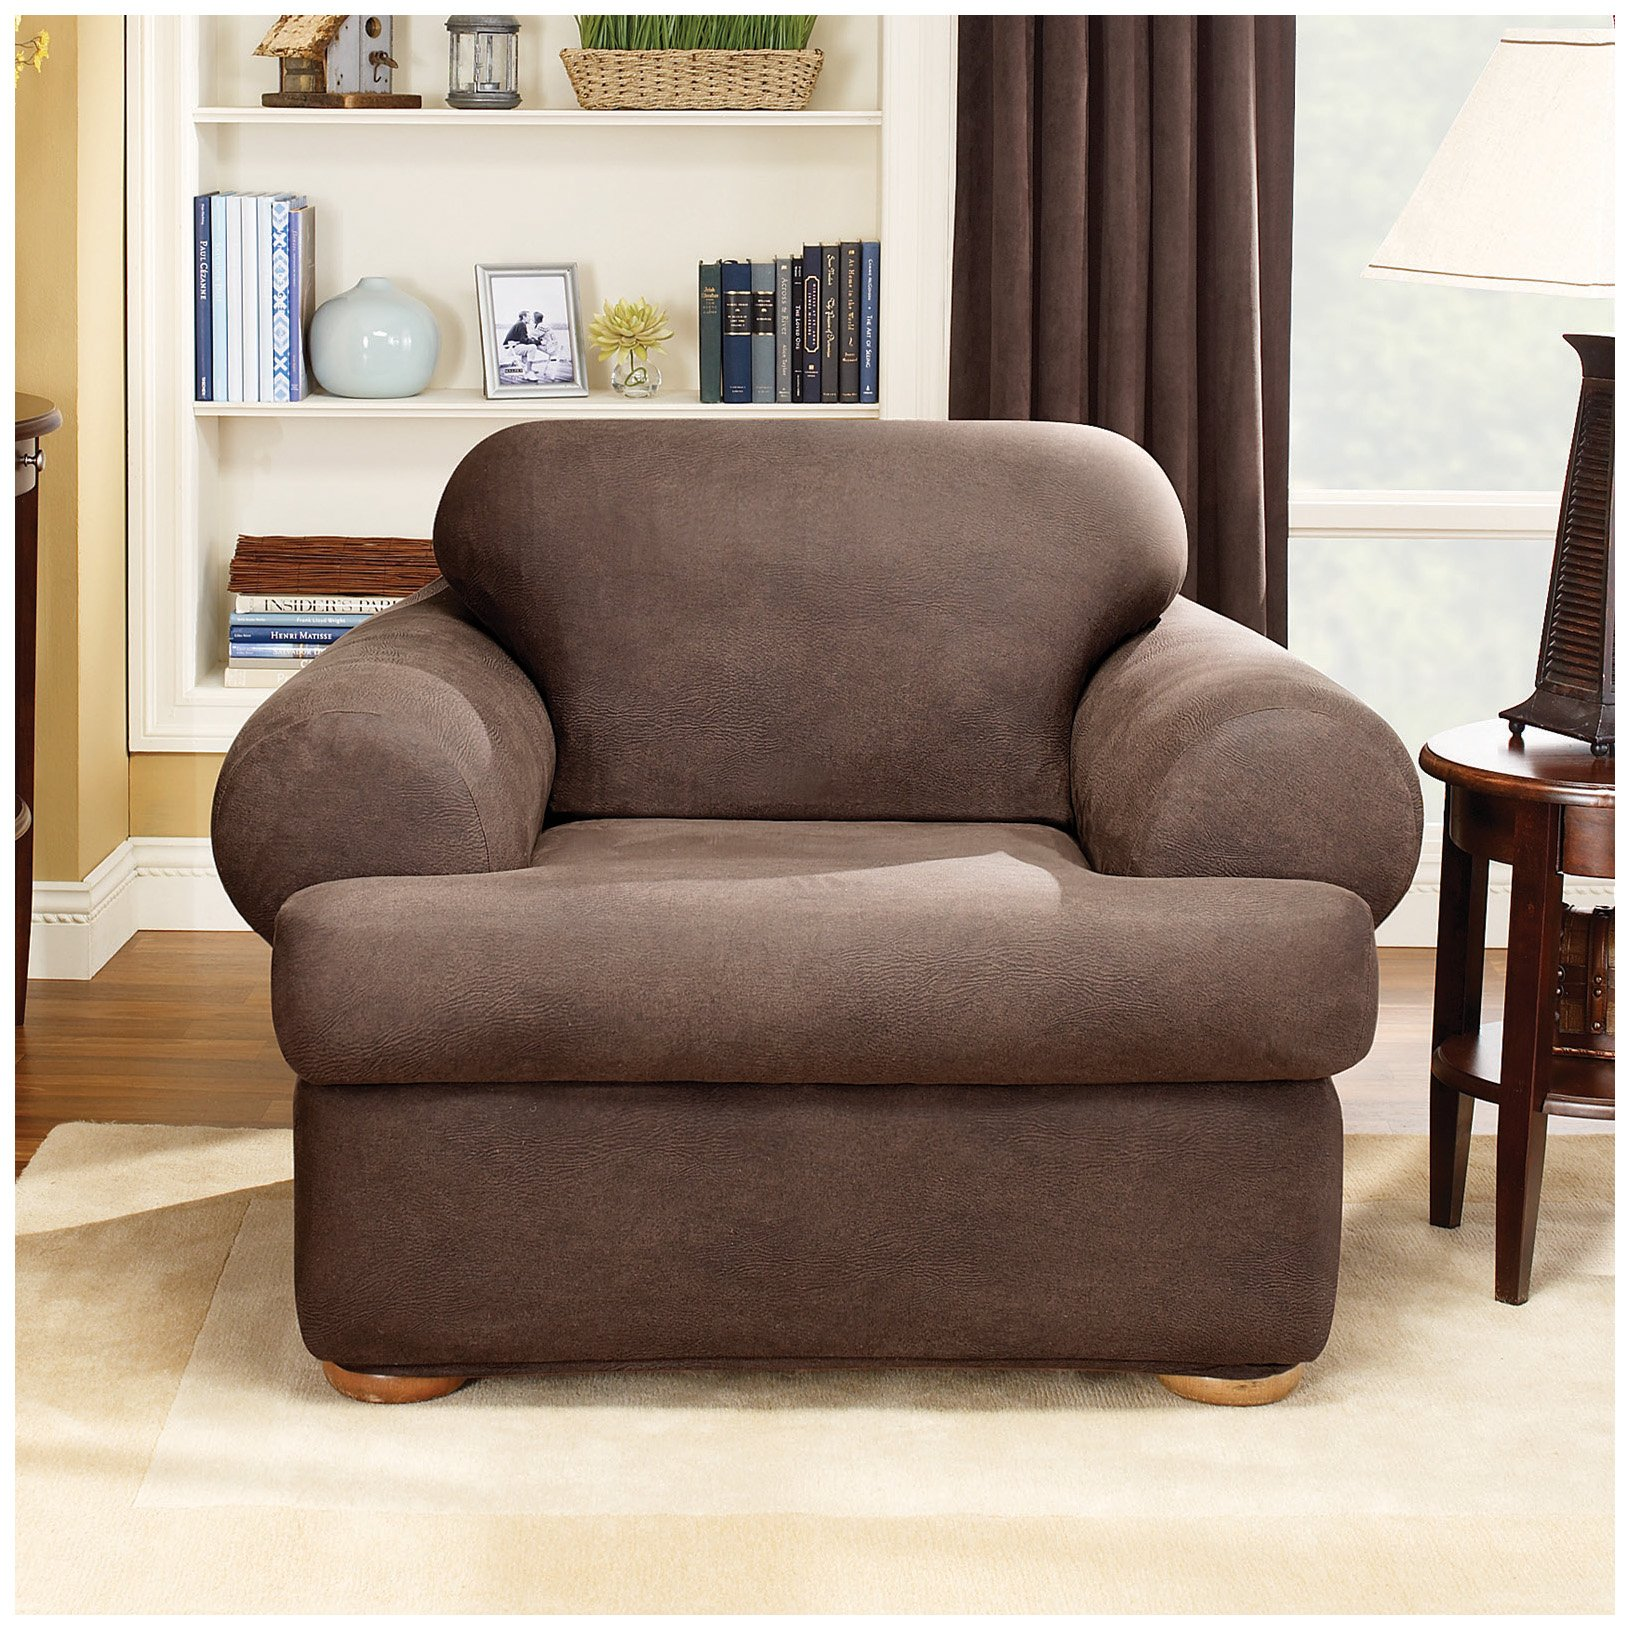 Sure Fit Stretch T-Cushion 2-piece Chair Slipcover Camel by Surefit